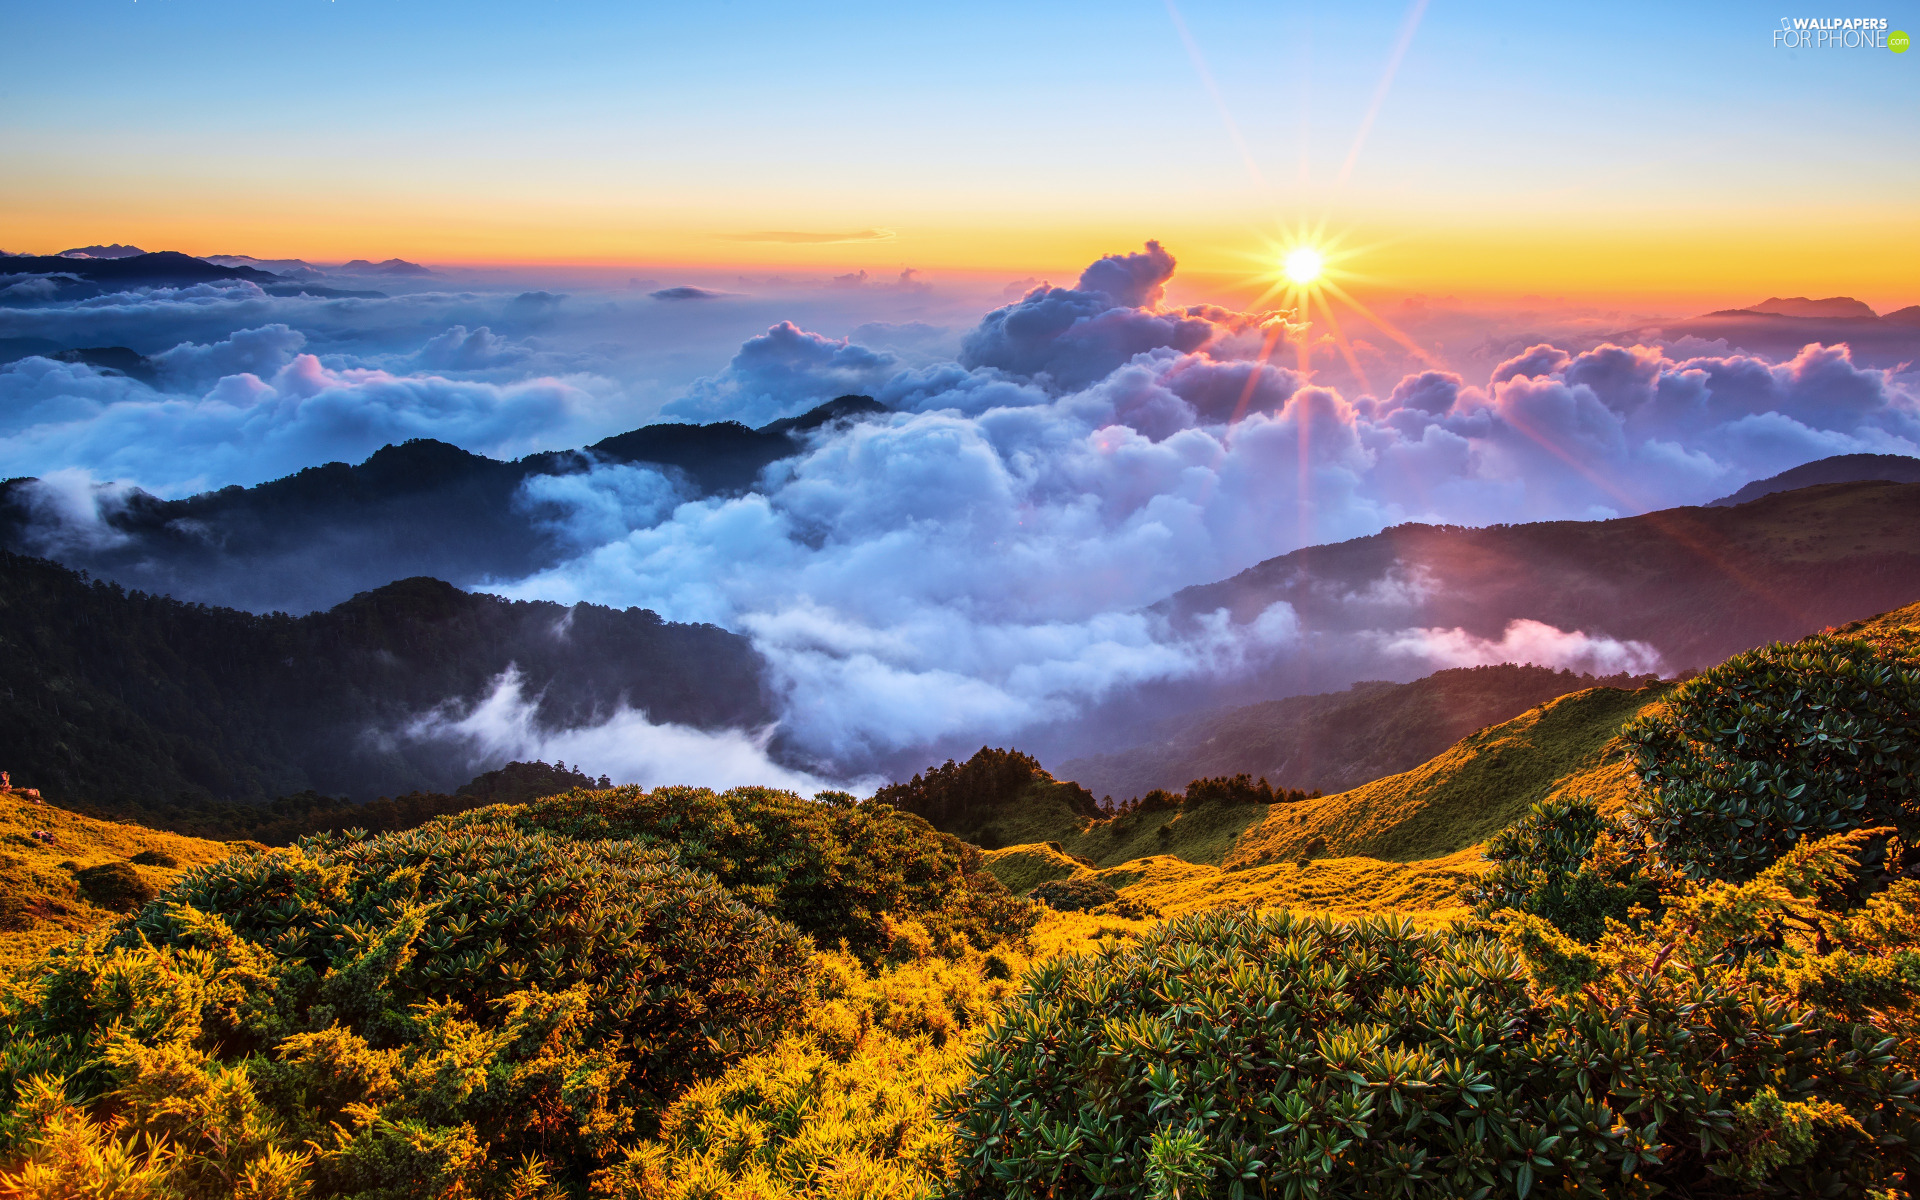 rays, clouds, VEGETATION, Mountains, The Hills, Sunrise, rays of the Sun, Fog